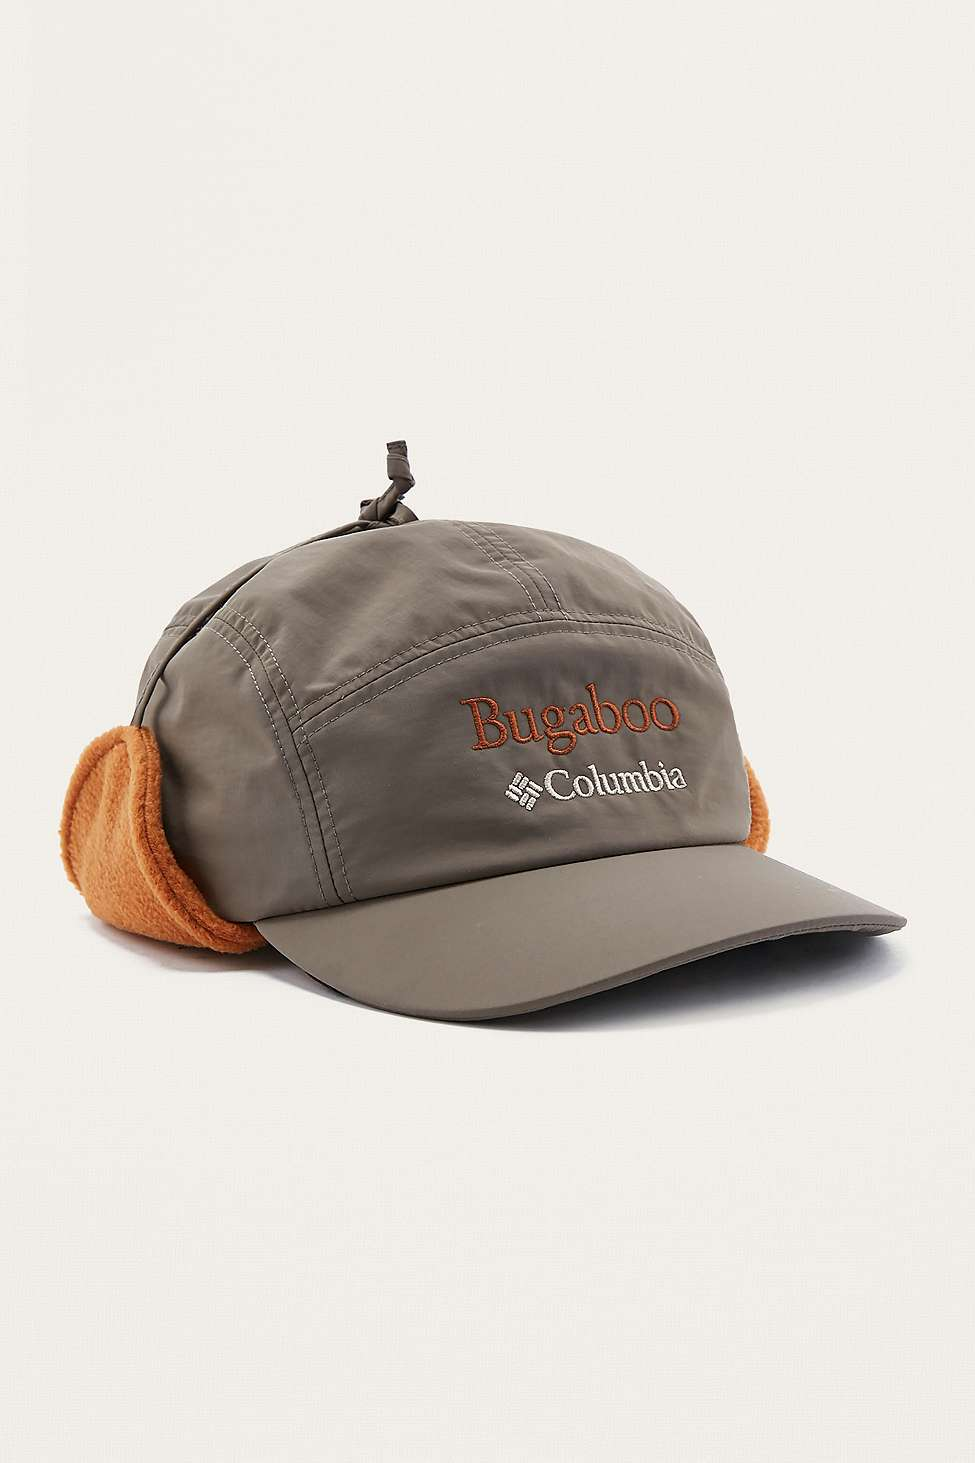 1809db0df74fa Bugaboo Copper Cap by Columbia — Thread